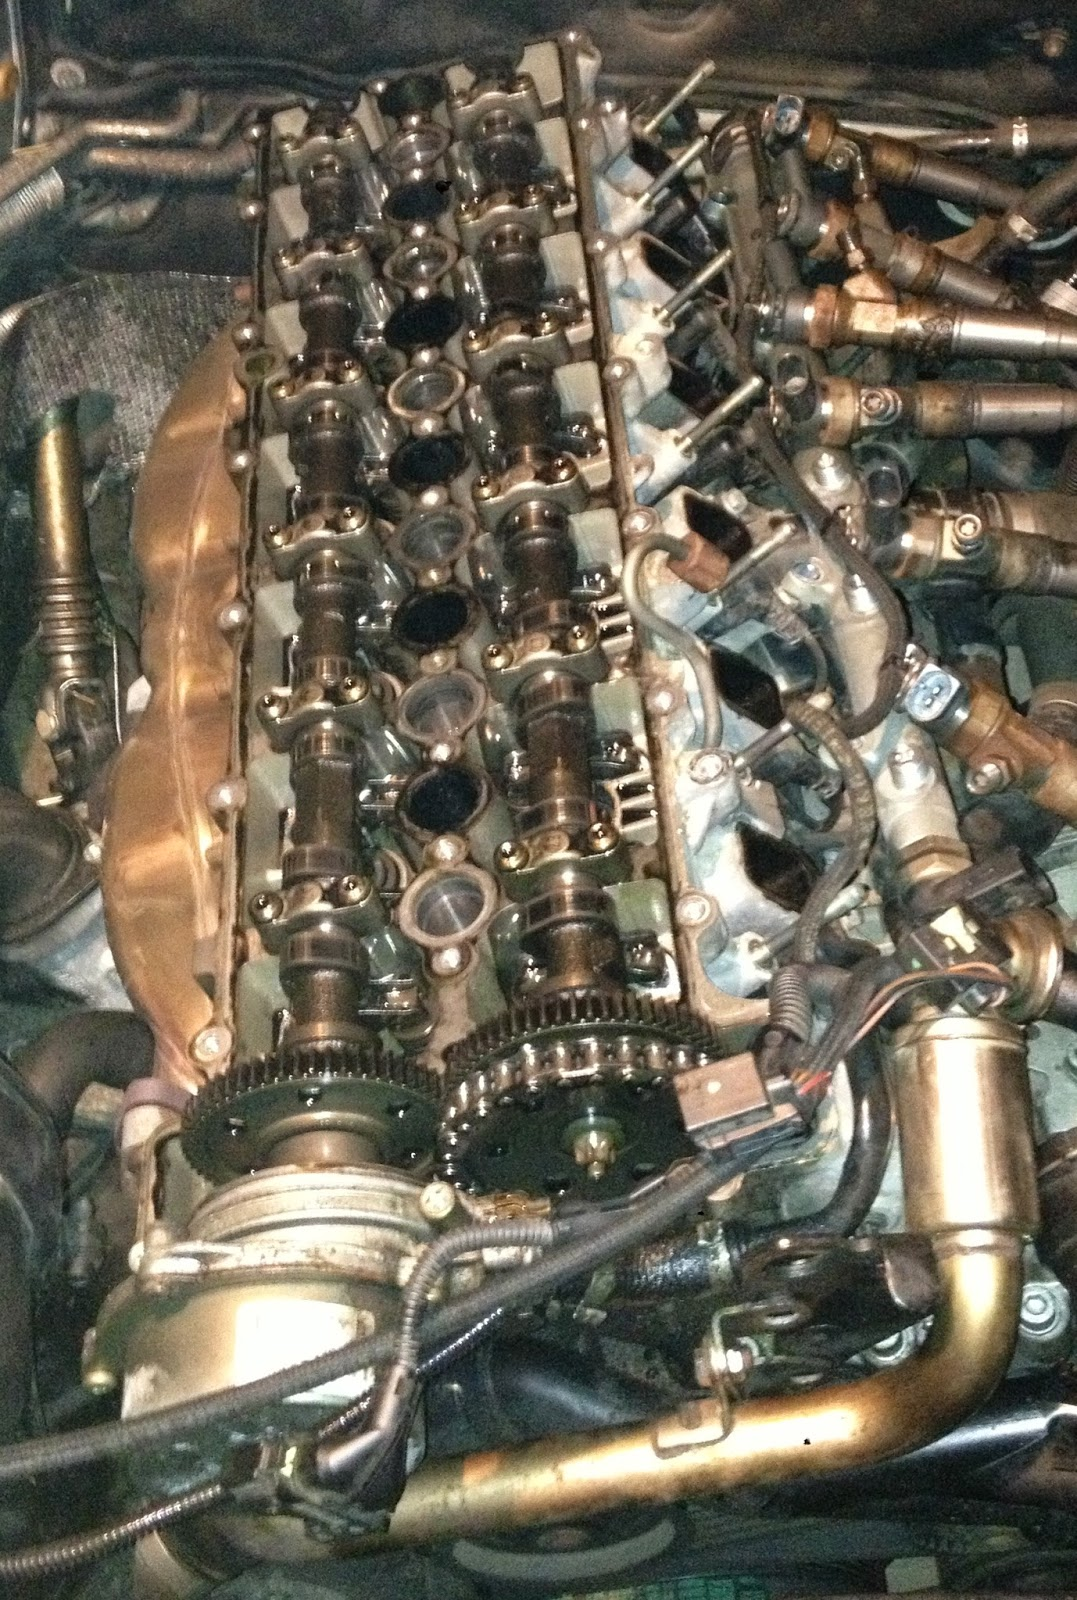 beemer lab e60 engine rebuild 3 camshafts re timing ghetto rh beemerlab blogspot com bmw 530d e60 engine diagram bmw e60 engine diagram